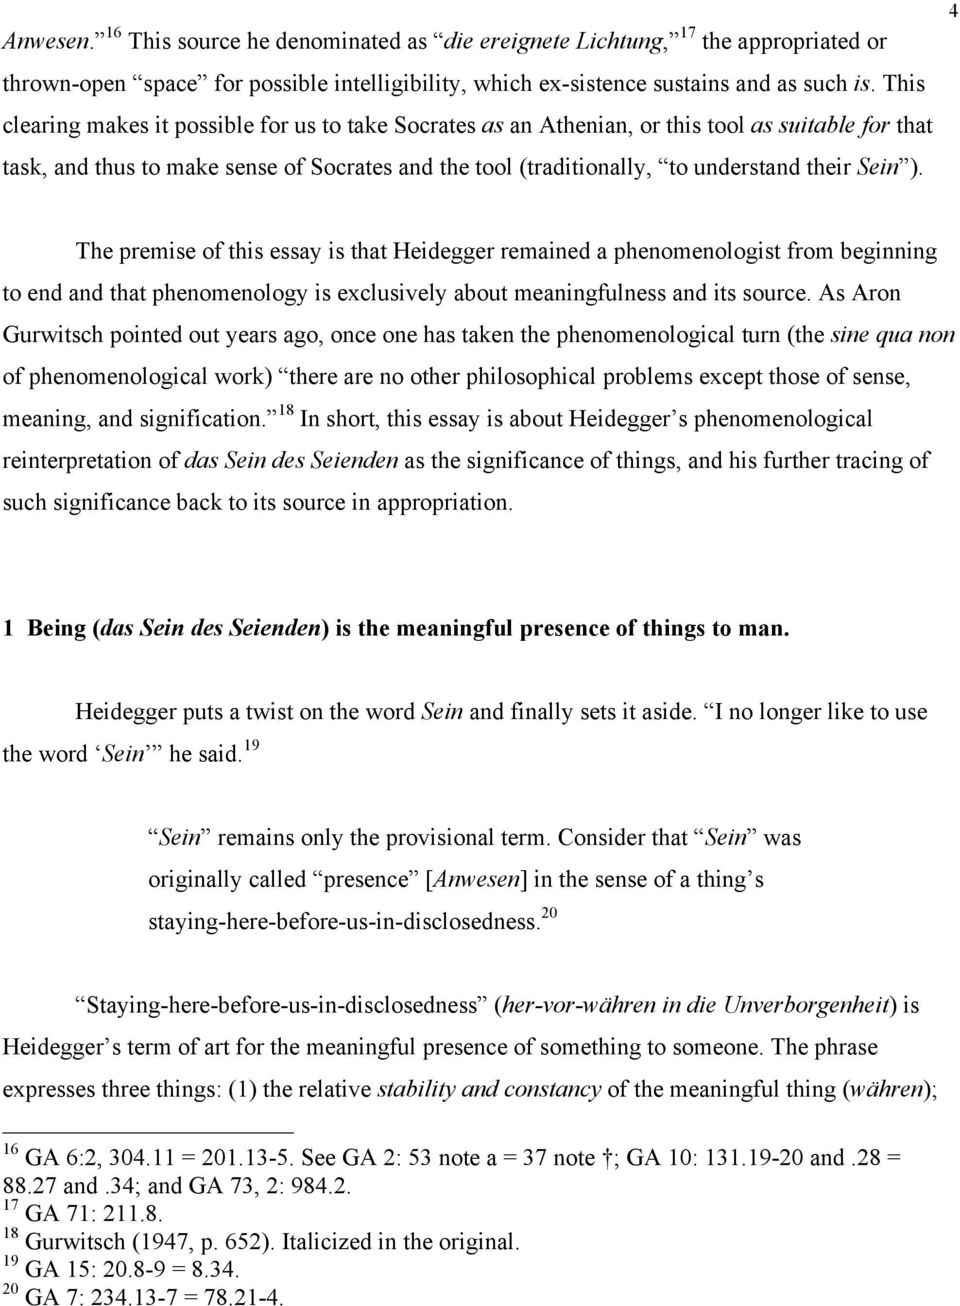 Sein ). 4 The premise of this essay is that Heidegger remained a phenomenologist from beginning to end and that phenomenology is exclusively about meaningfulness and its source.